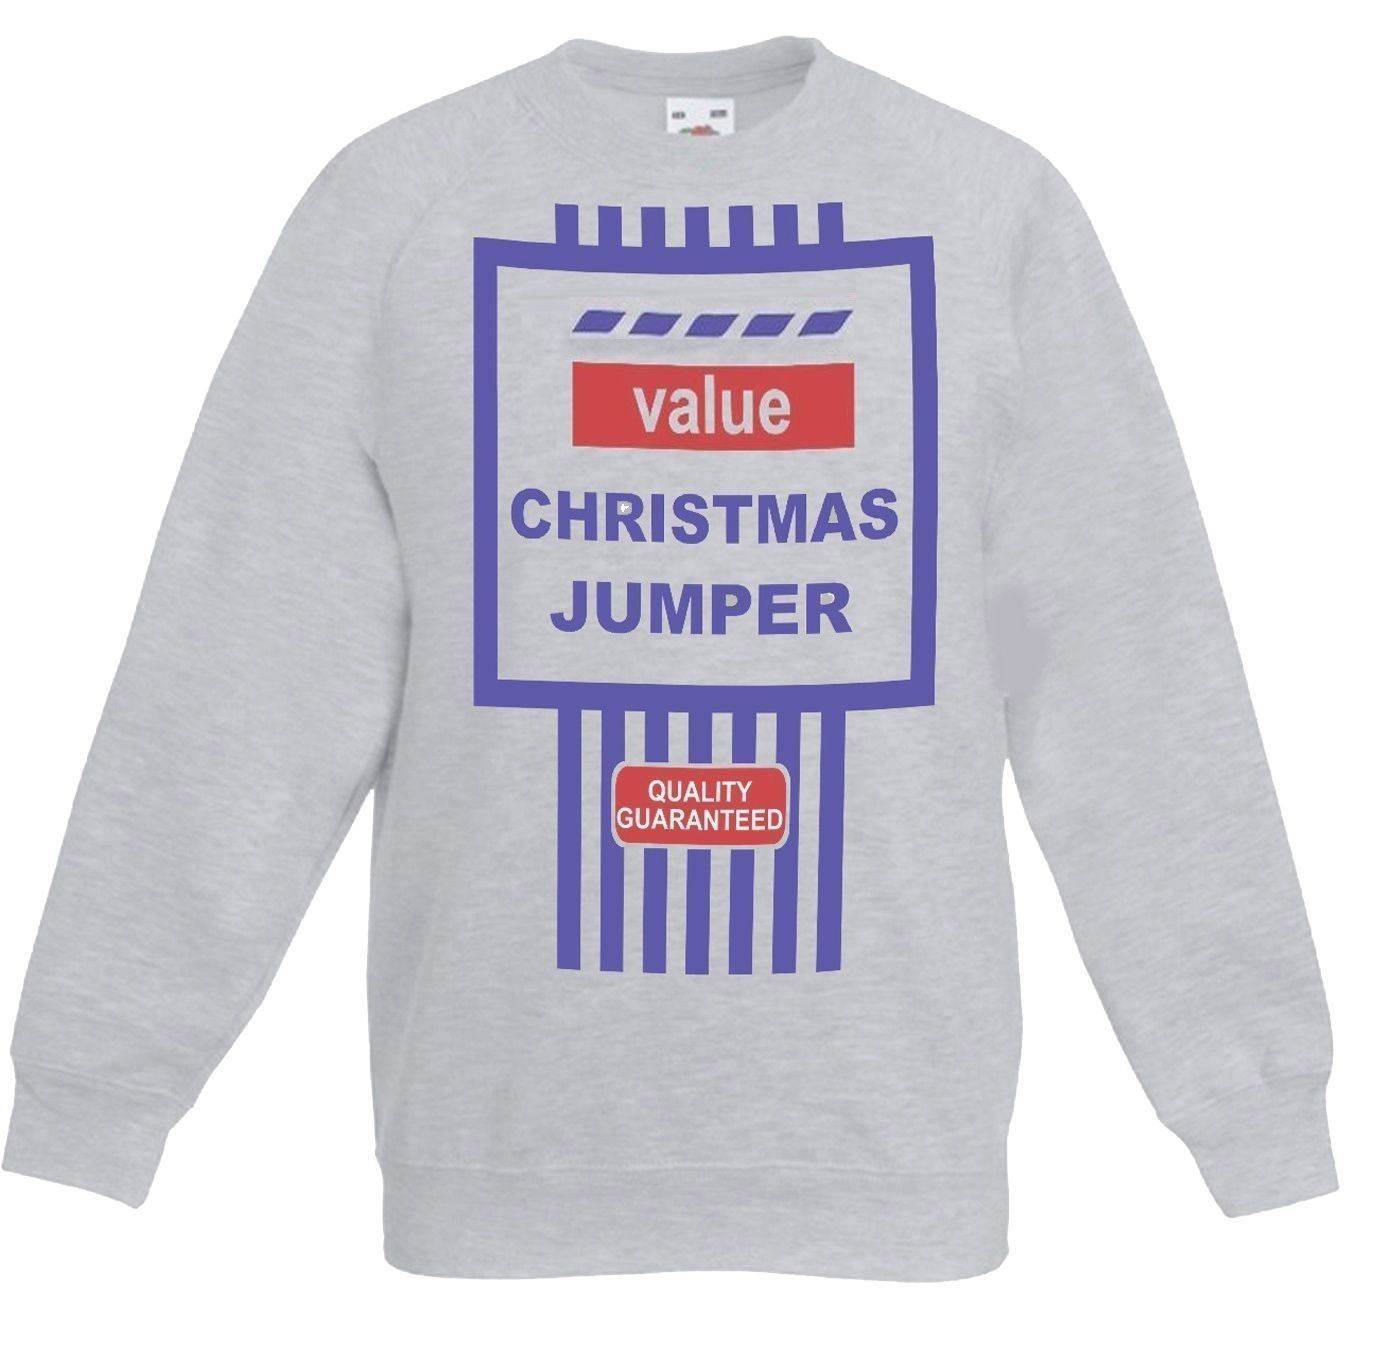 Funny-Grey-Tesco-039-s-Value-Christmas-Jumper-Tesco-Bargain-Sweatshirt